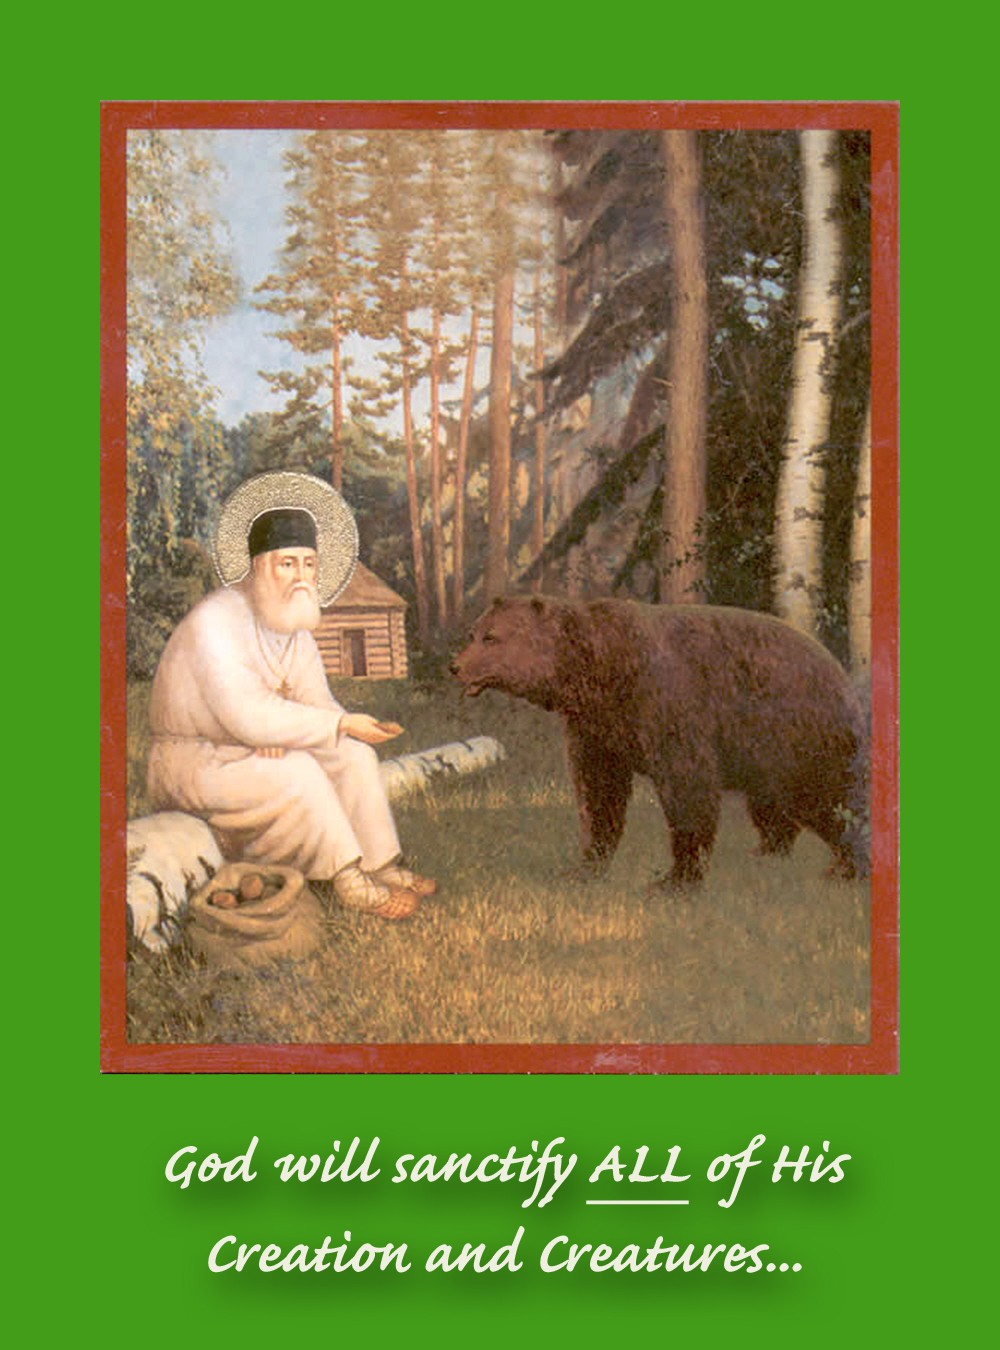 00 Unknown Artist. St Serafim Sarovsky and the Bear. 19th century.ALL Creation